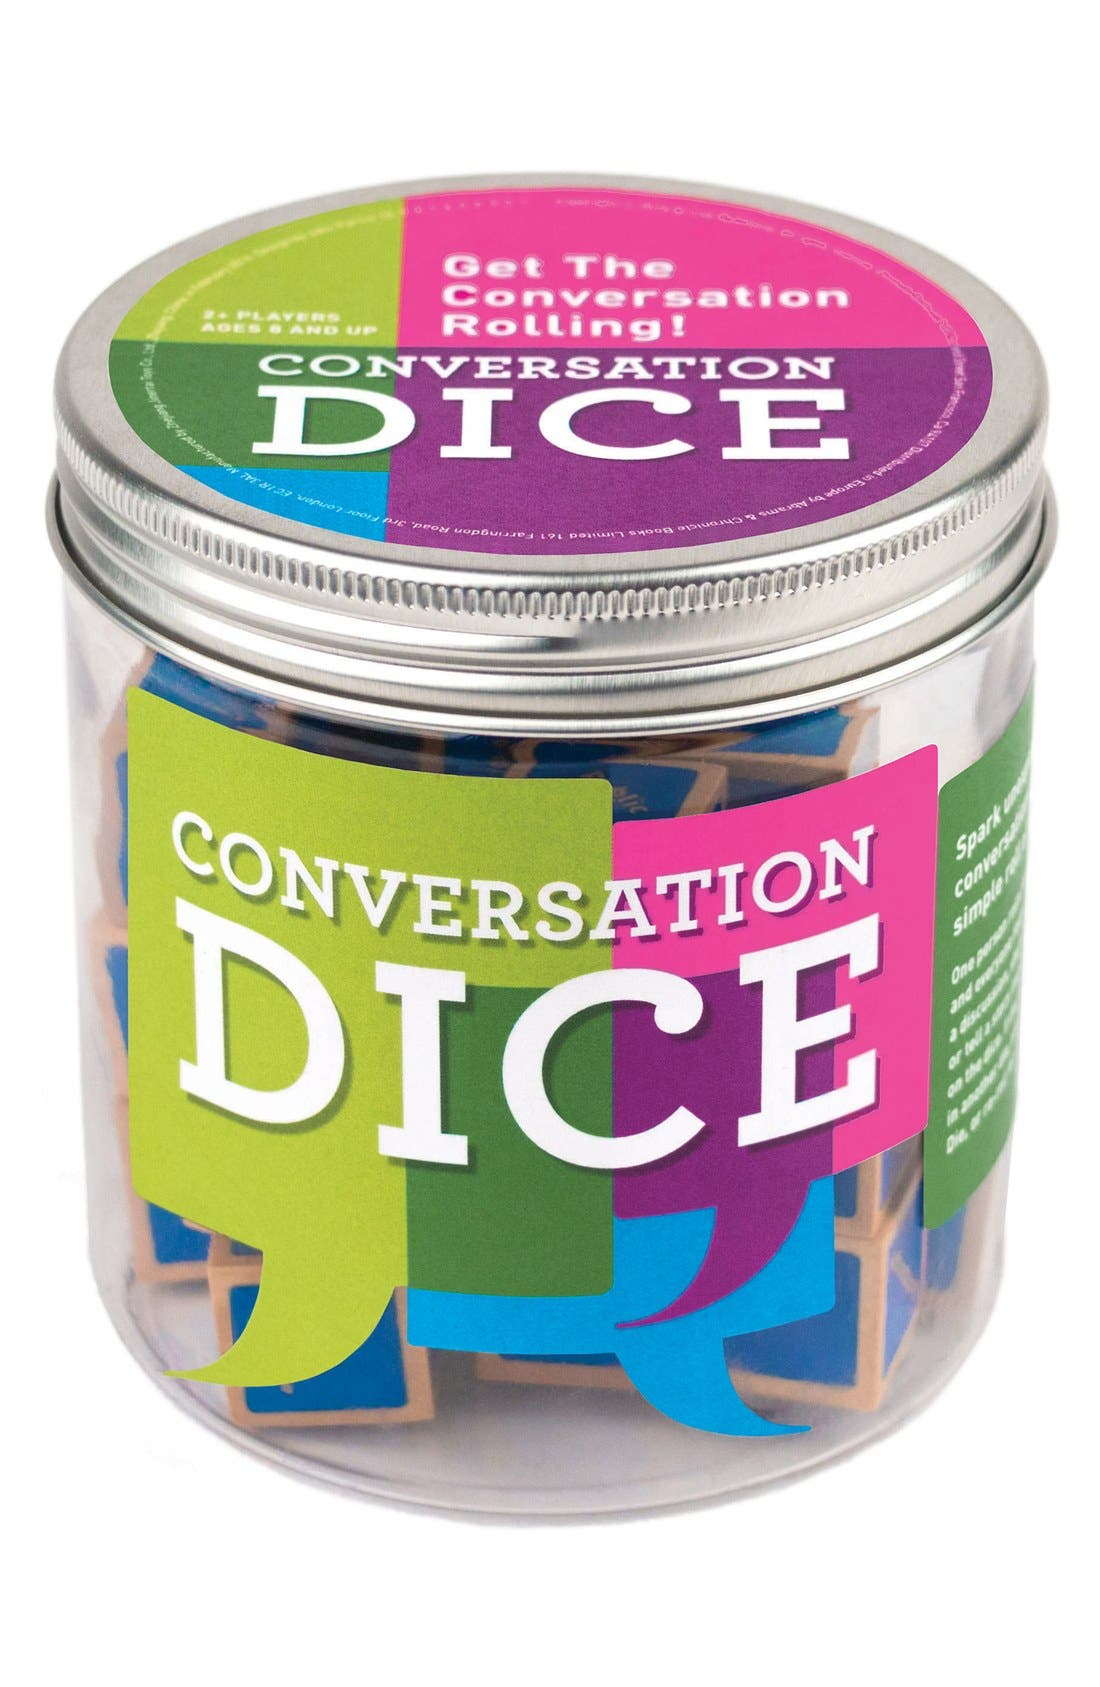 Alternate Image 1 Selected - Chronicle Books Conversation Dice